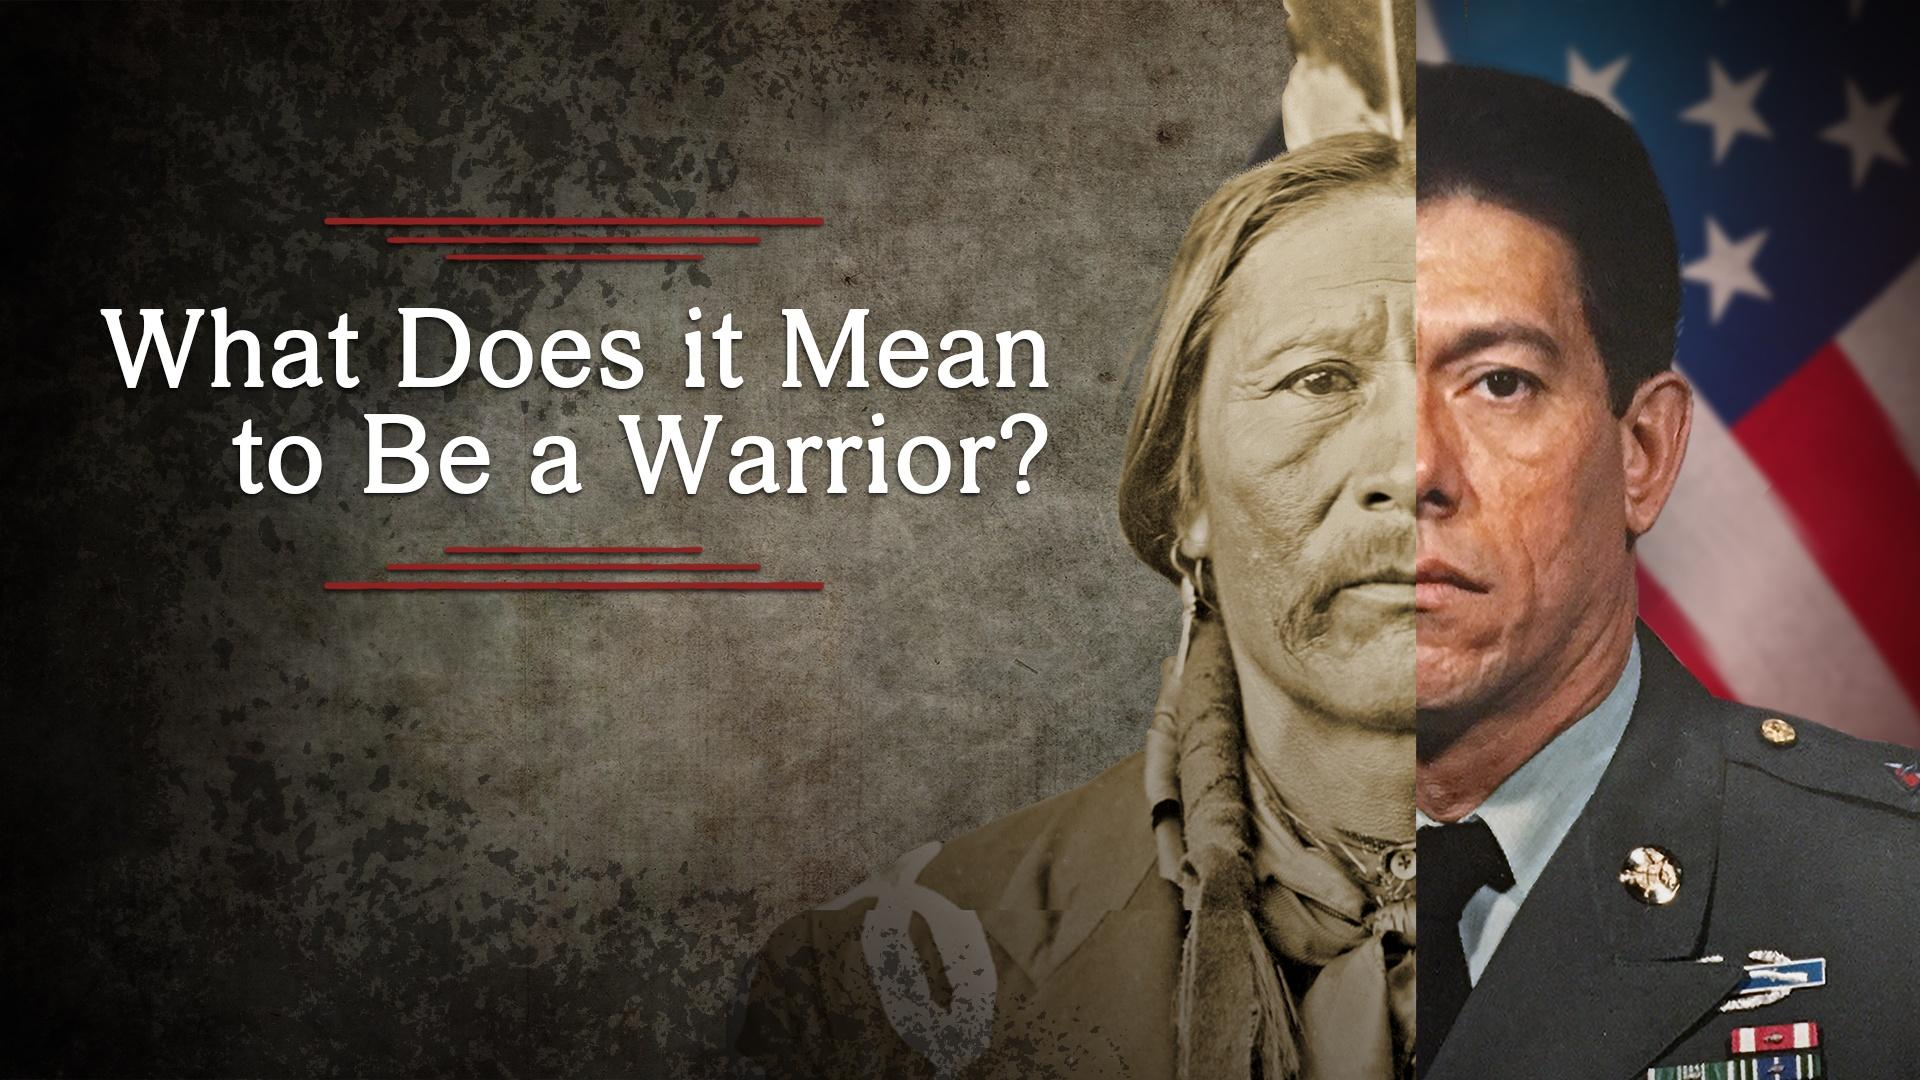 What Does it Mean to Be a Warrior?